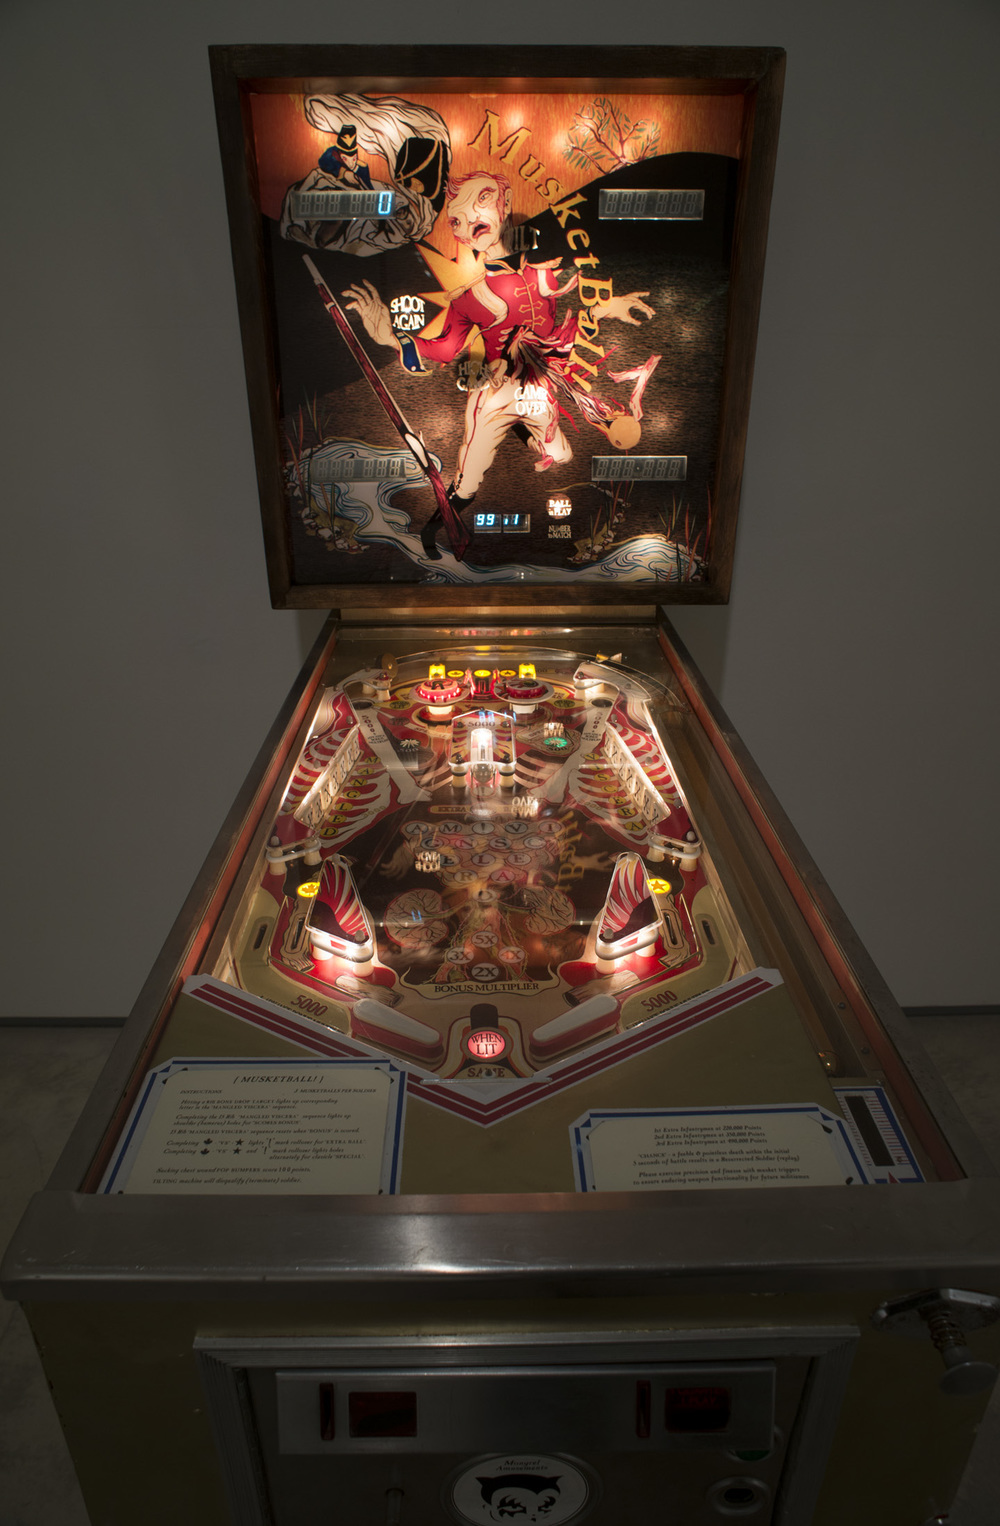 Howie Tsui 徐浩恩, Musketball! 火枪球弹!!, 2012, Pinball machine, Plexiglas, acrylic paint, vinyl, mp3 trigger and speakers 改装弹球机, 178 x 72 x 136 cm